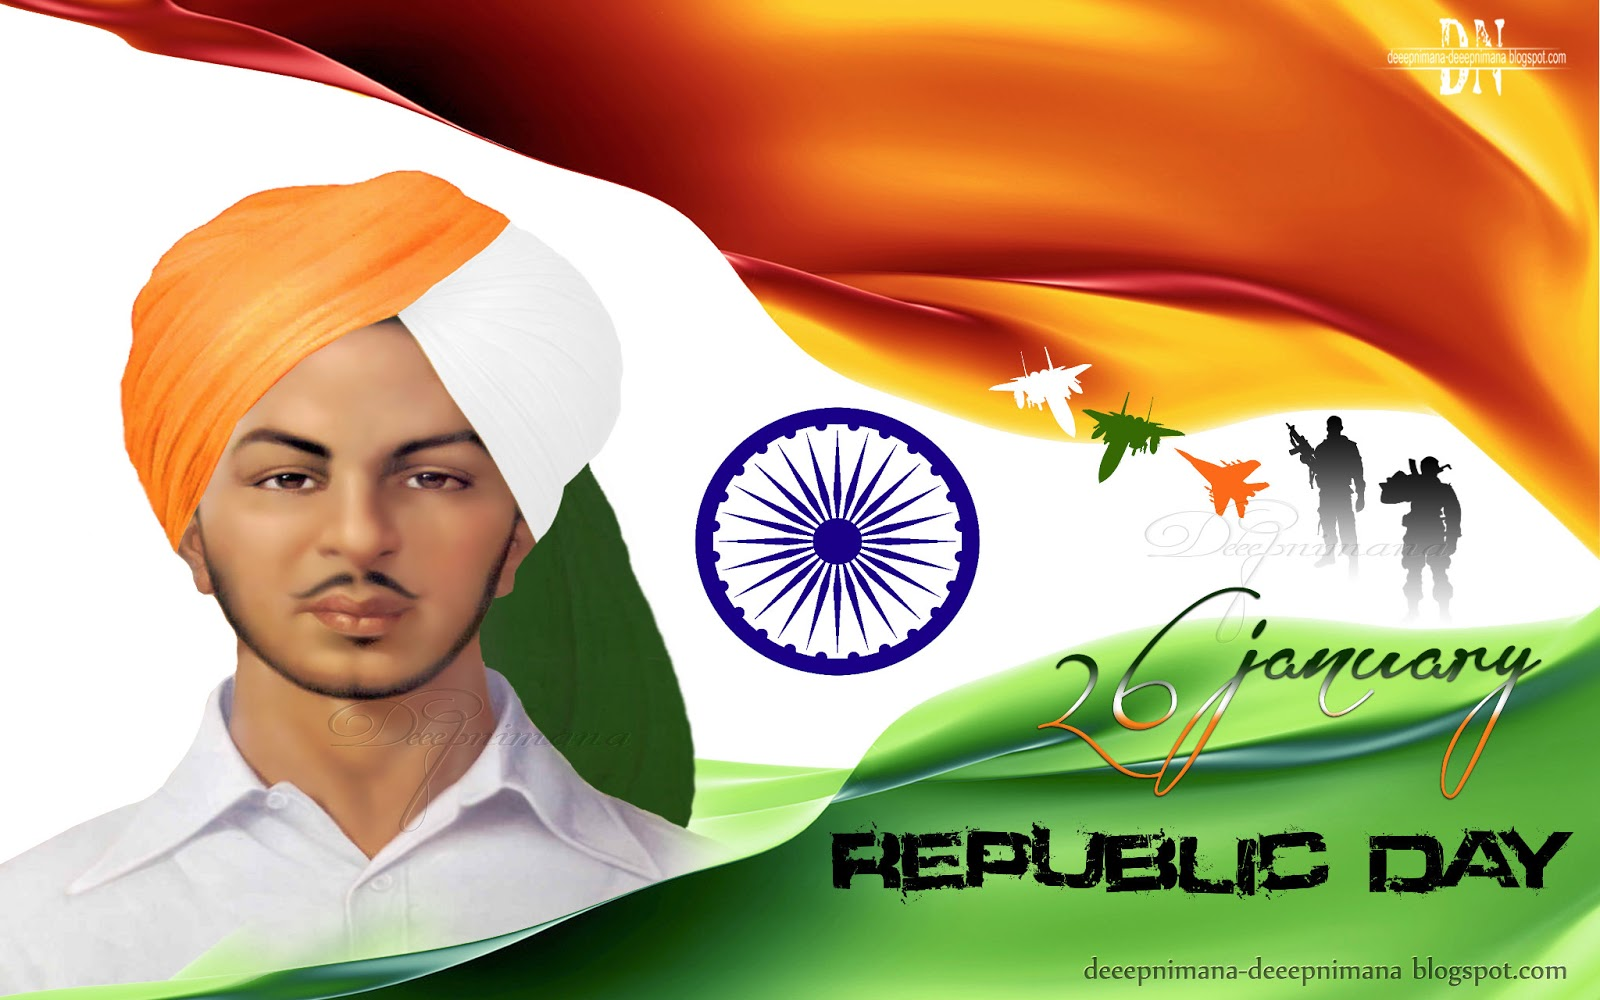 ... images and information: Bhagat Singh Original Photo With Indian Flag